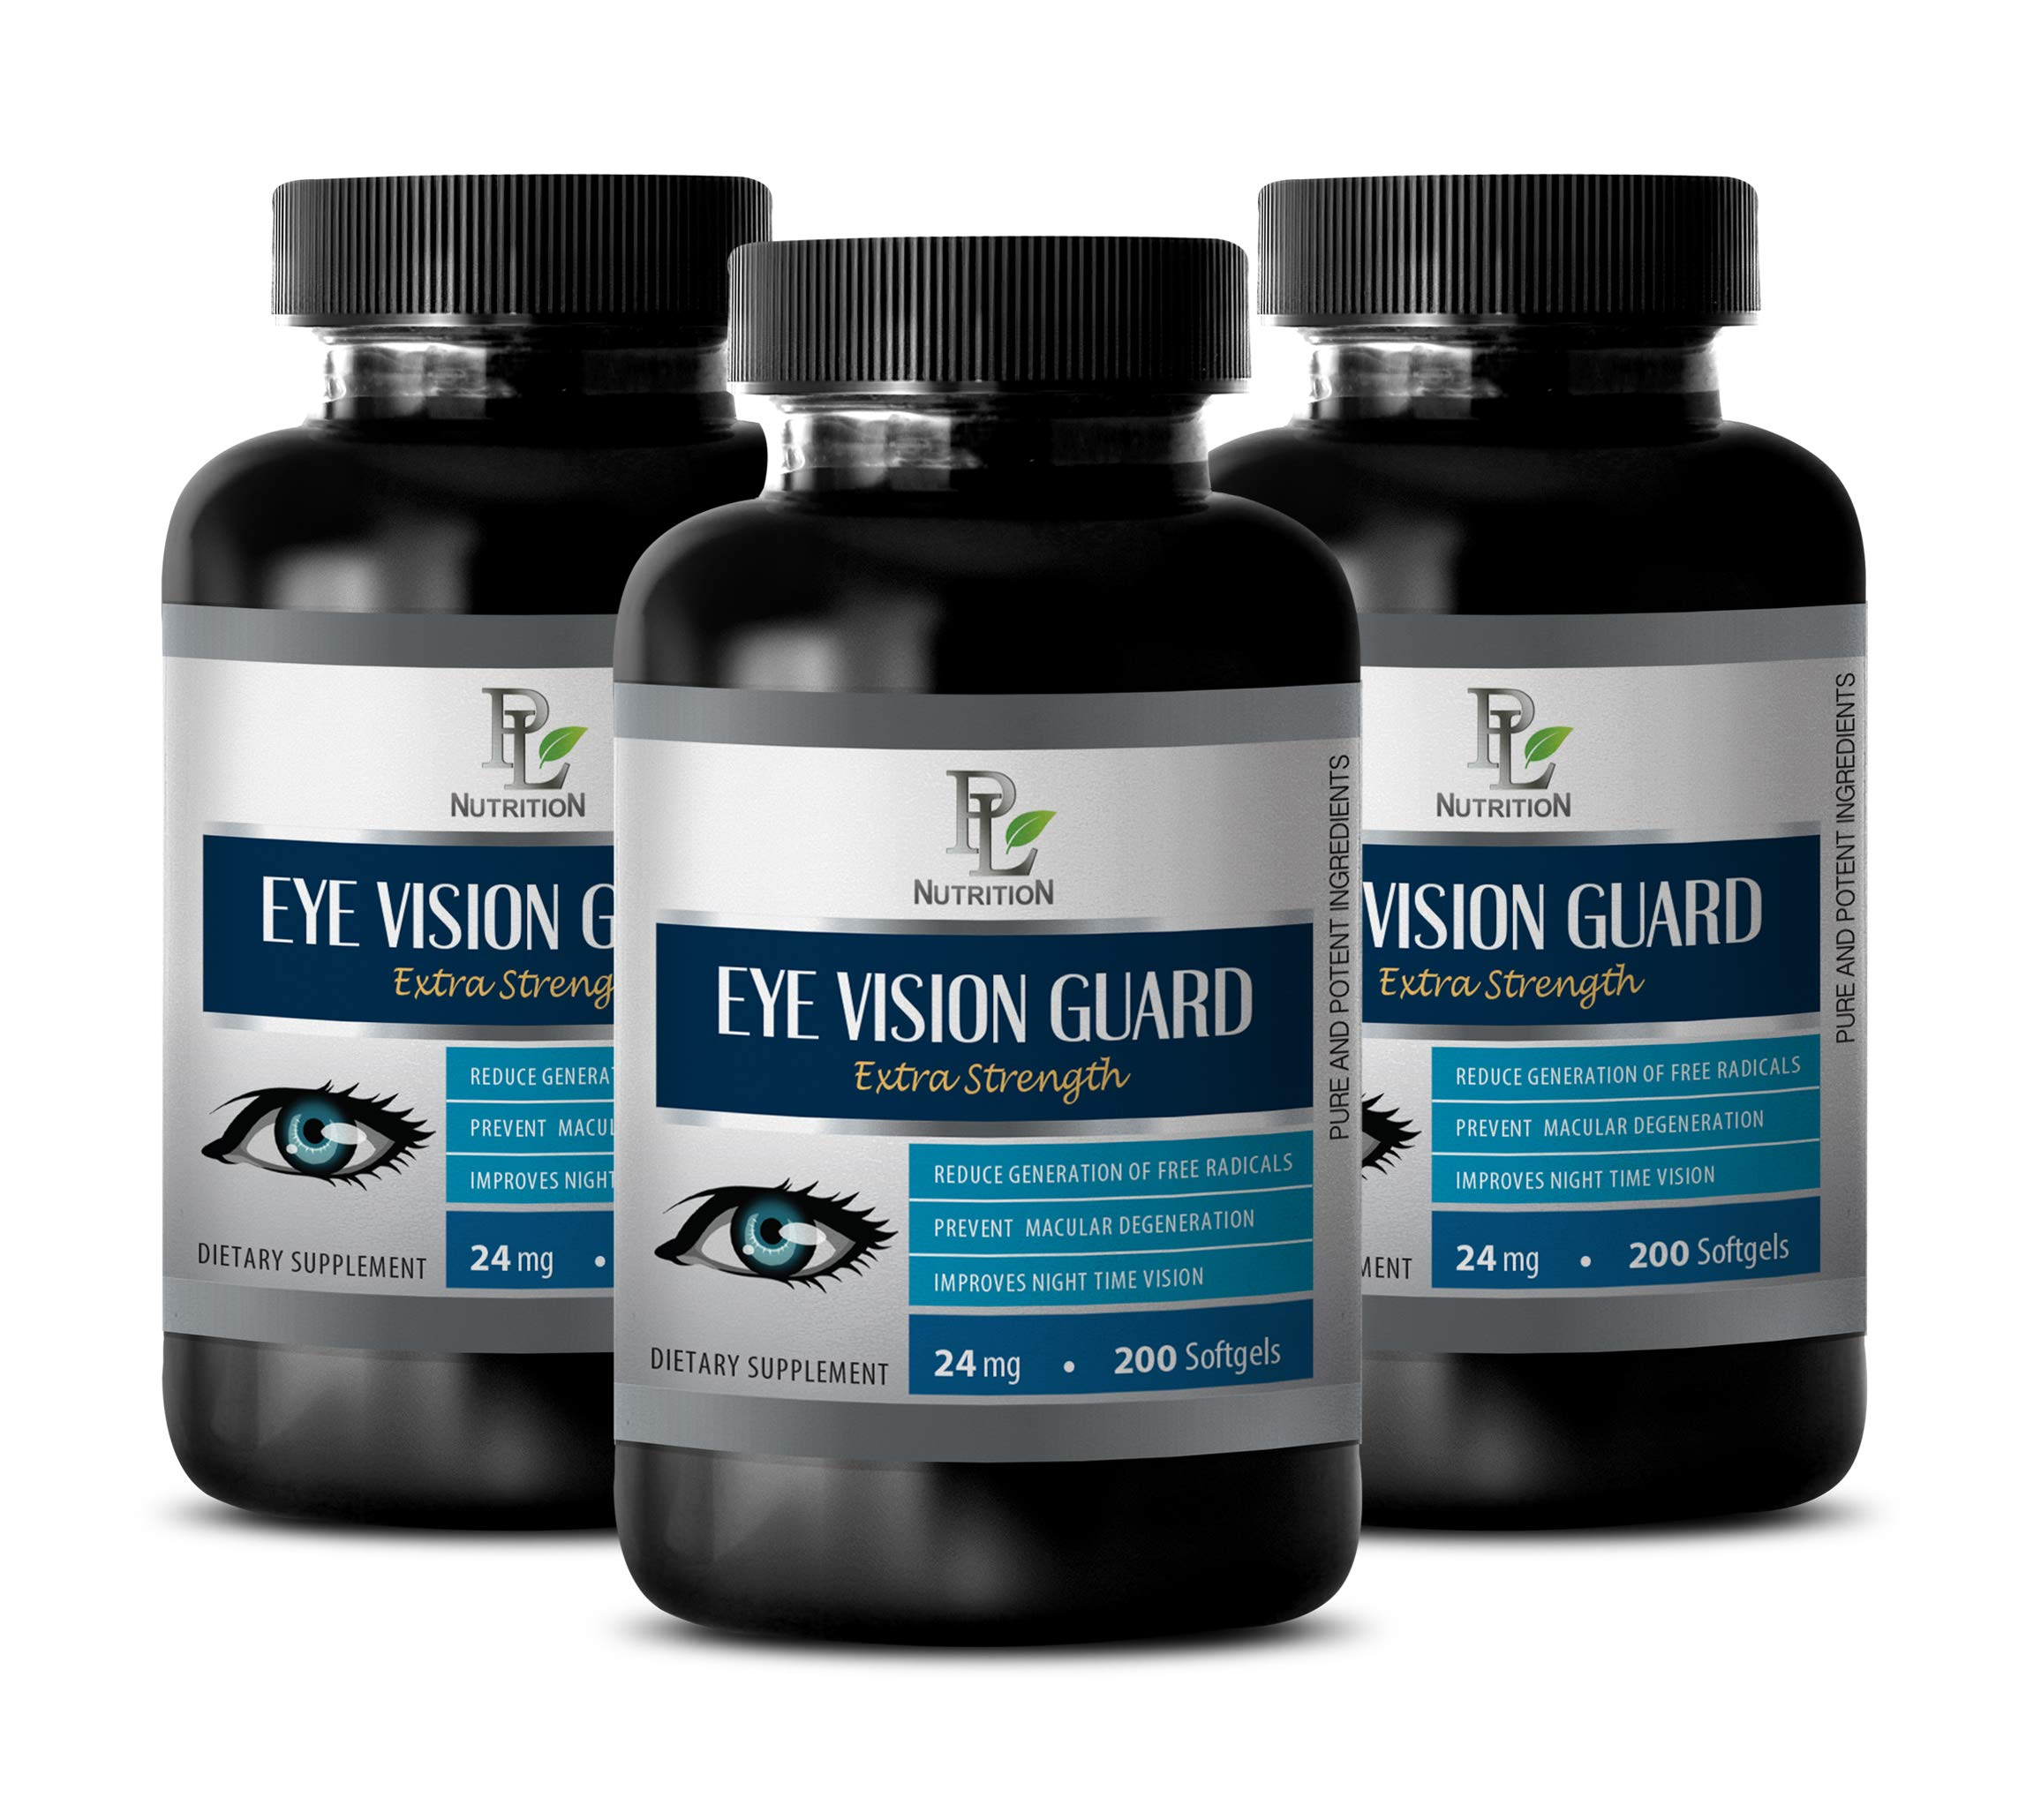 Eye Supplements for Adults Natural - Eye Vision Guard Extra Strength Dietary Supplement - Bilberry Herbal Supplement - 3 Bottles 600 Softgels